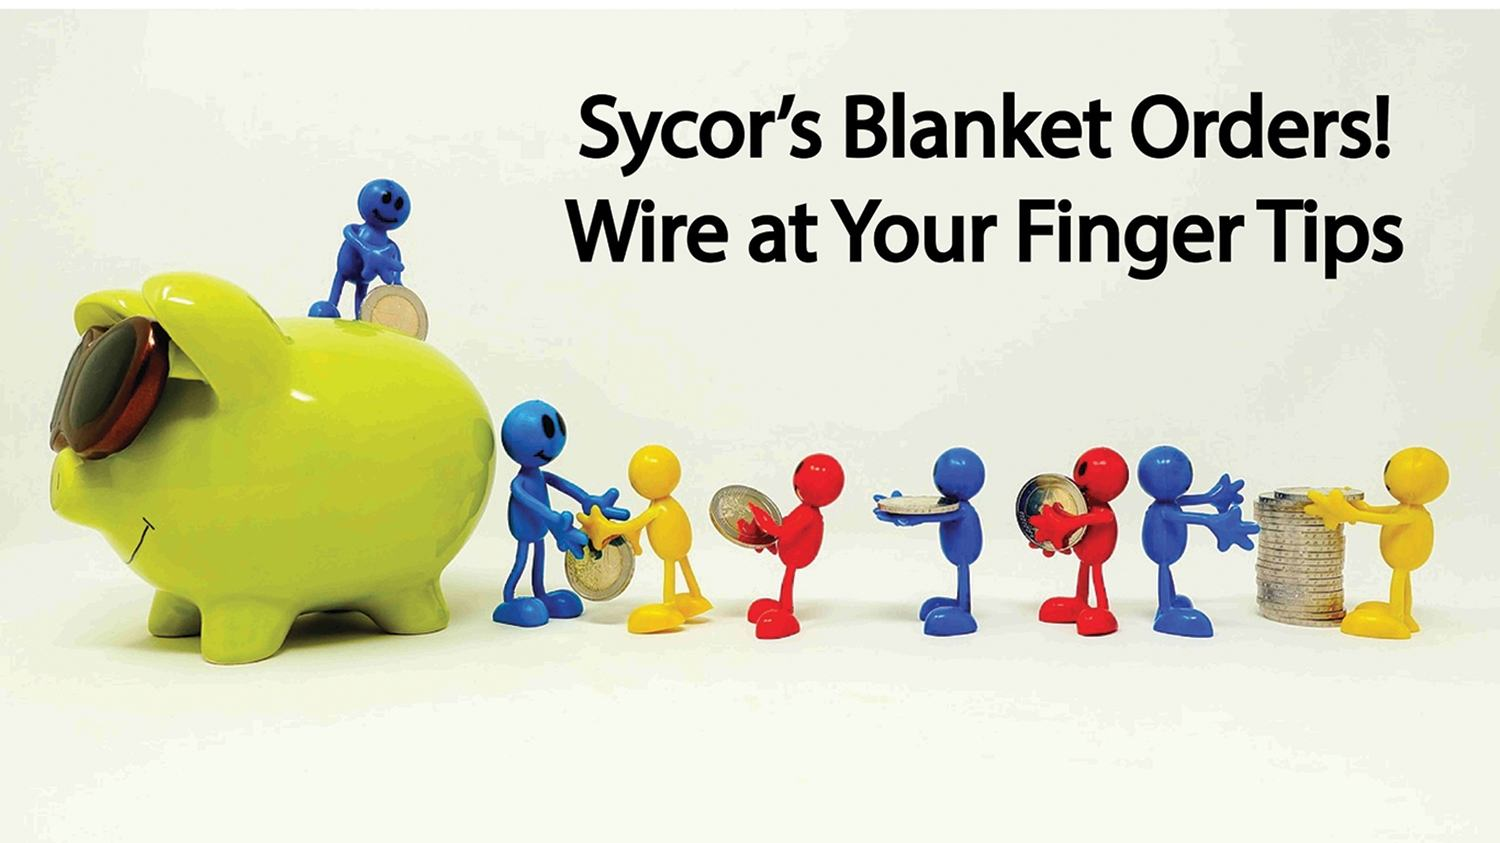 Sycor's Annual Purchase Blanket Orders